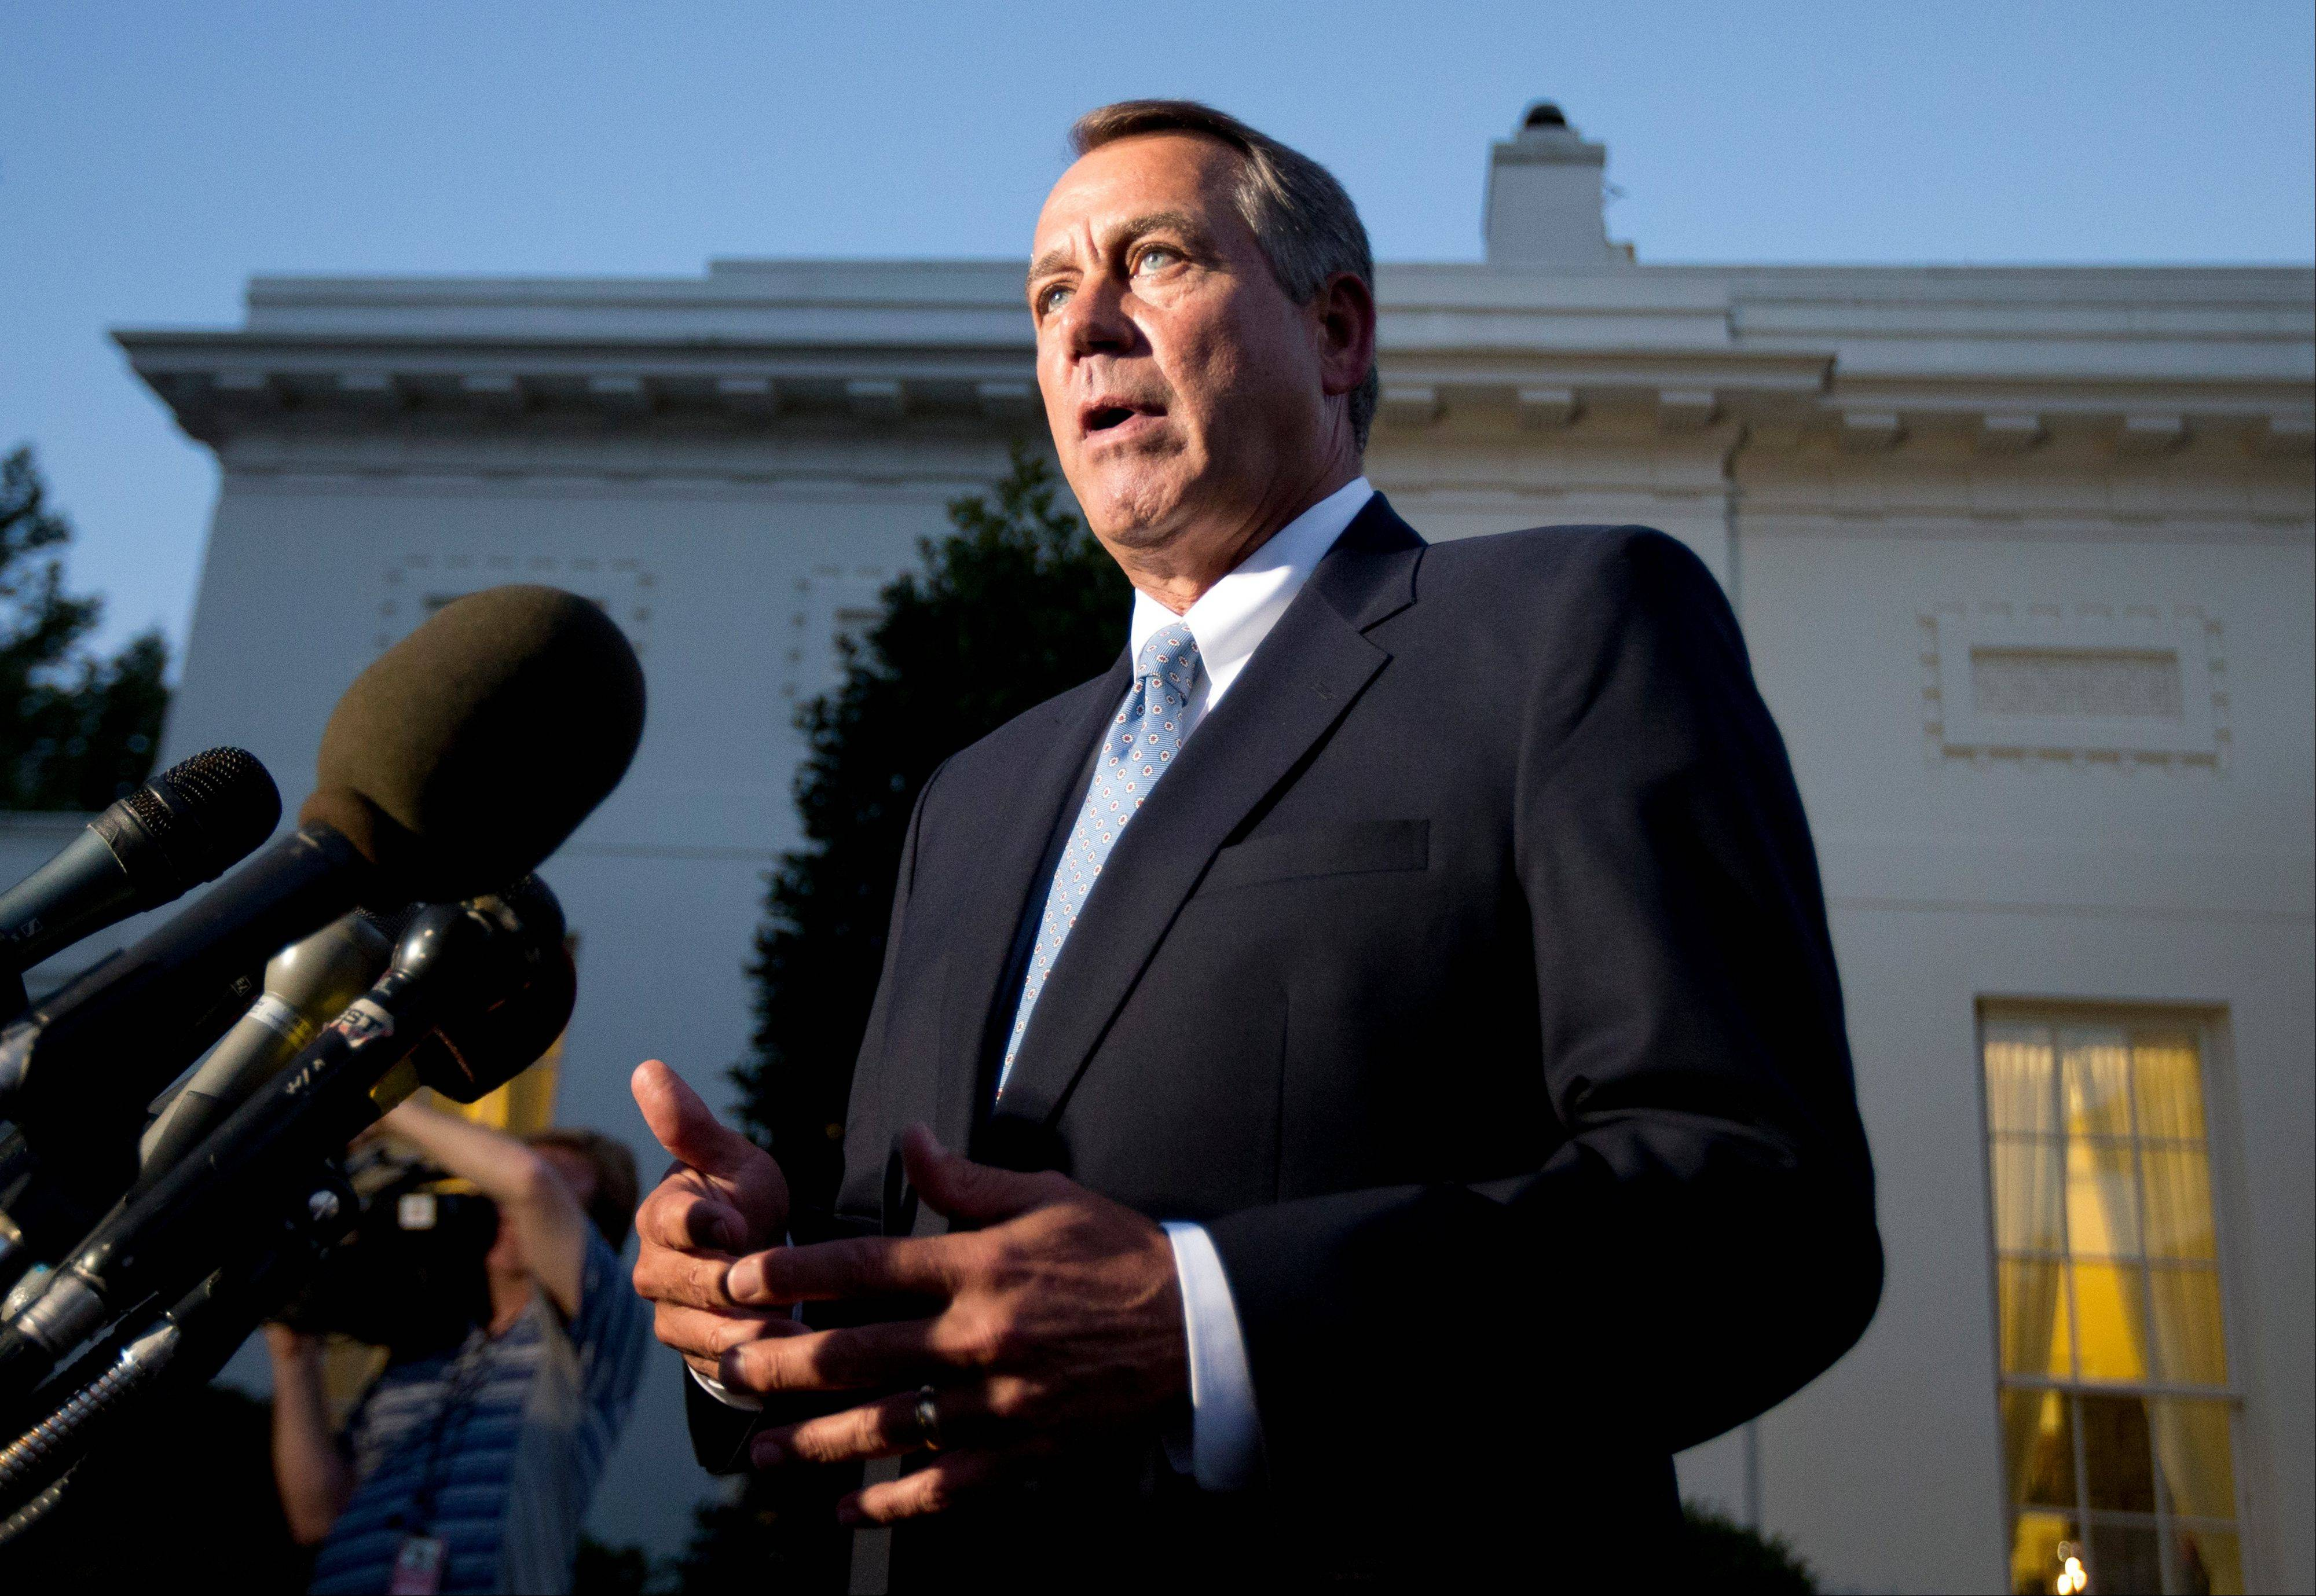 House Speaker John Boehner, an Ohio Republican, speaks to reporters following a meeting with President Barack Obama at the White House on Wednesday.